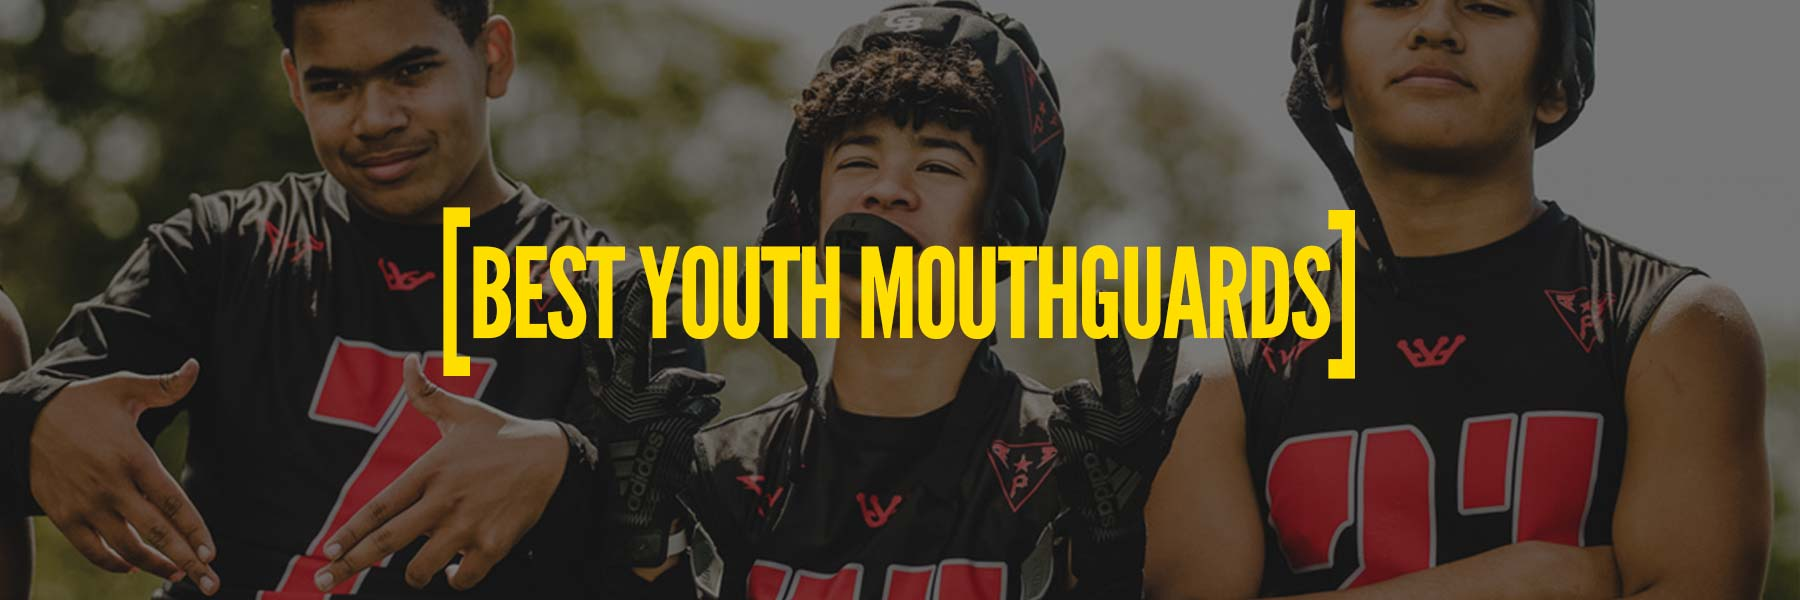 best mouthguards for youth football